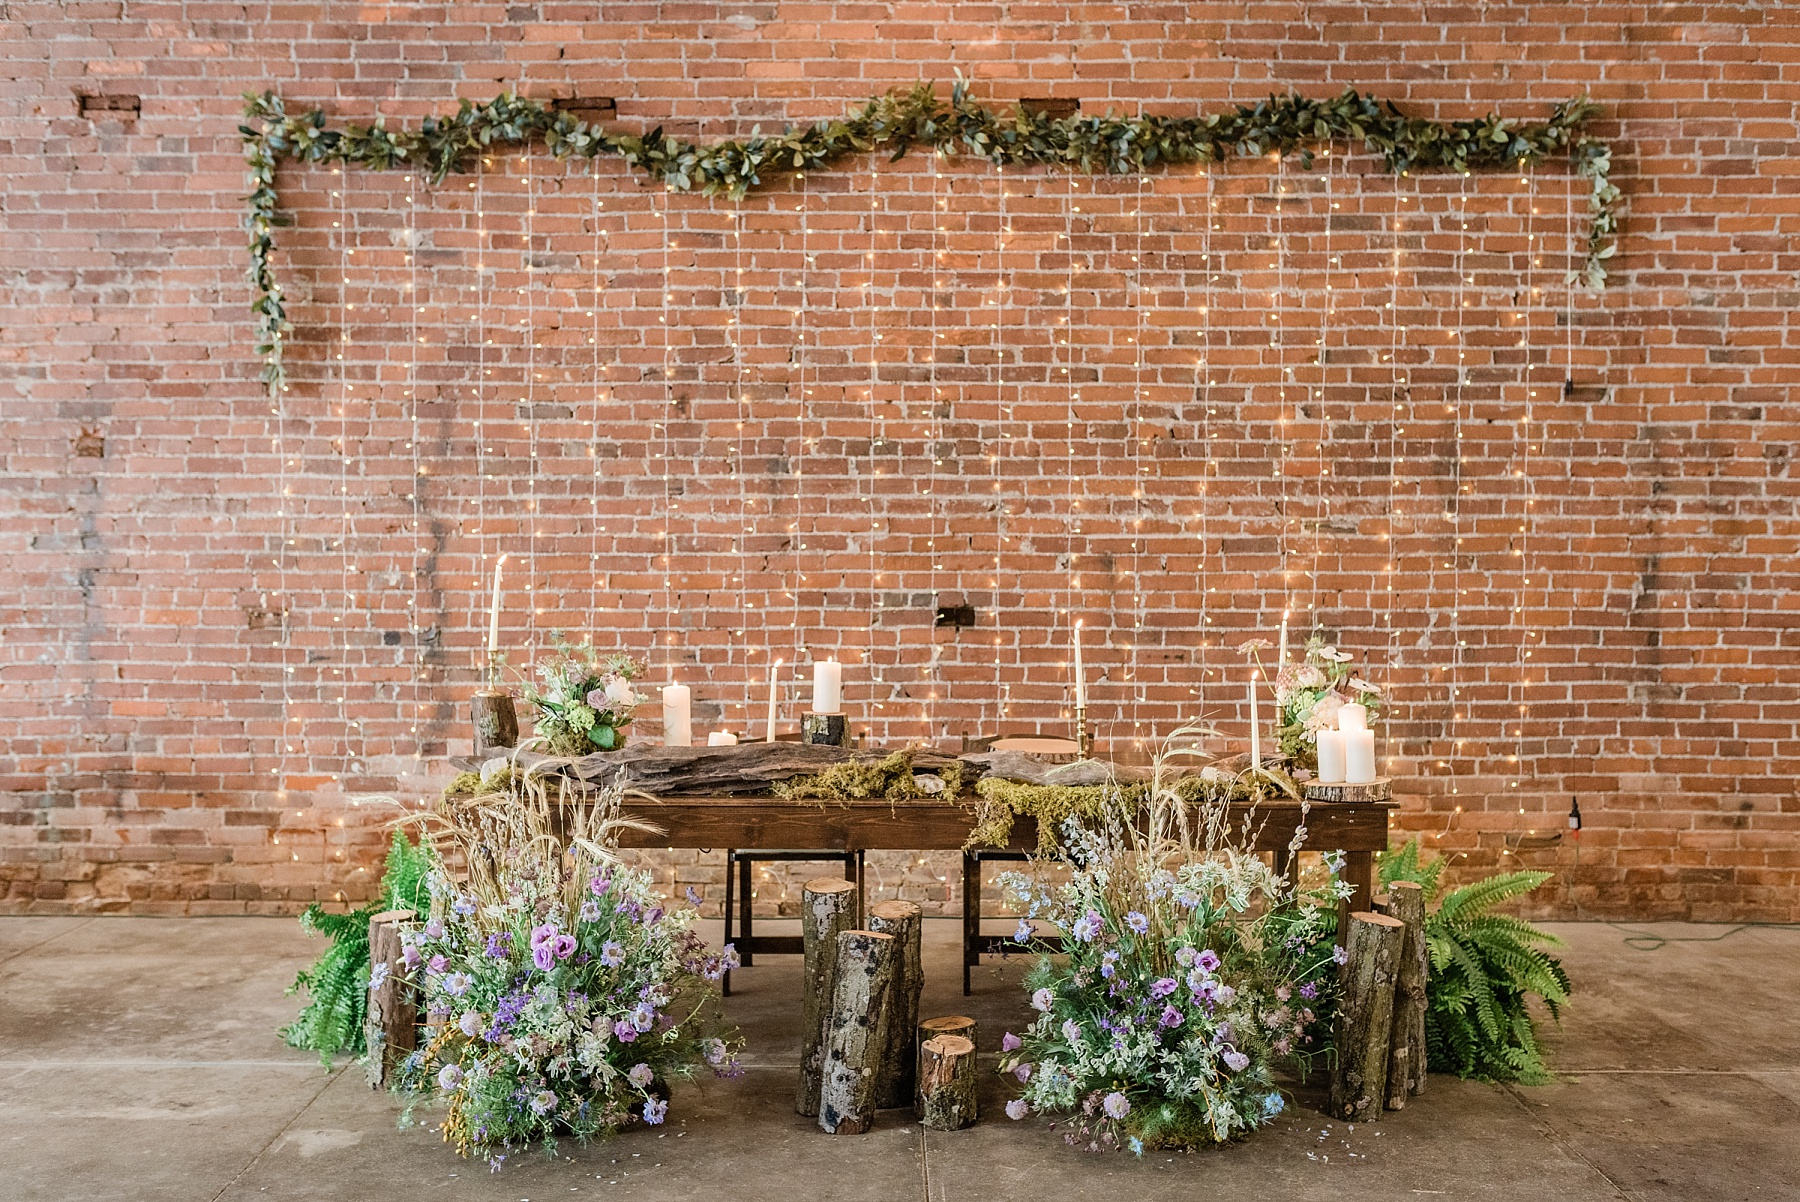 Intimate Mountain Hues Inspired Summer Wedding at Wildcliff Weddings and Events by Kelsi Kliethermes Photography Best Missouri and Maui Wedding Photographer_0001.jpg